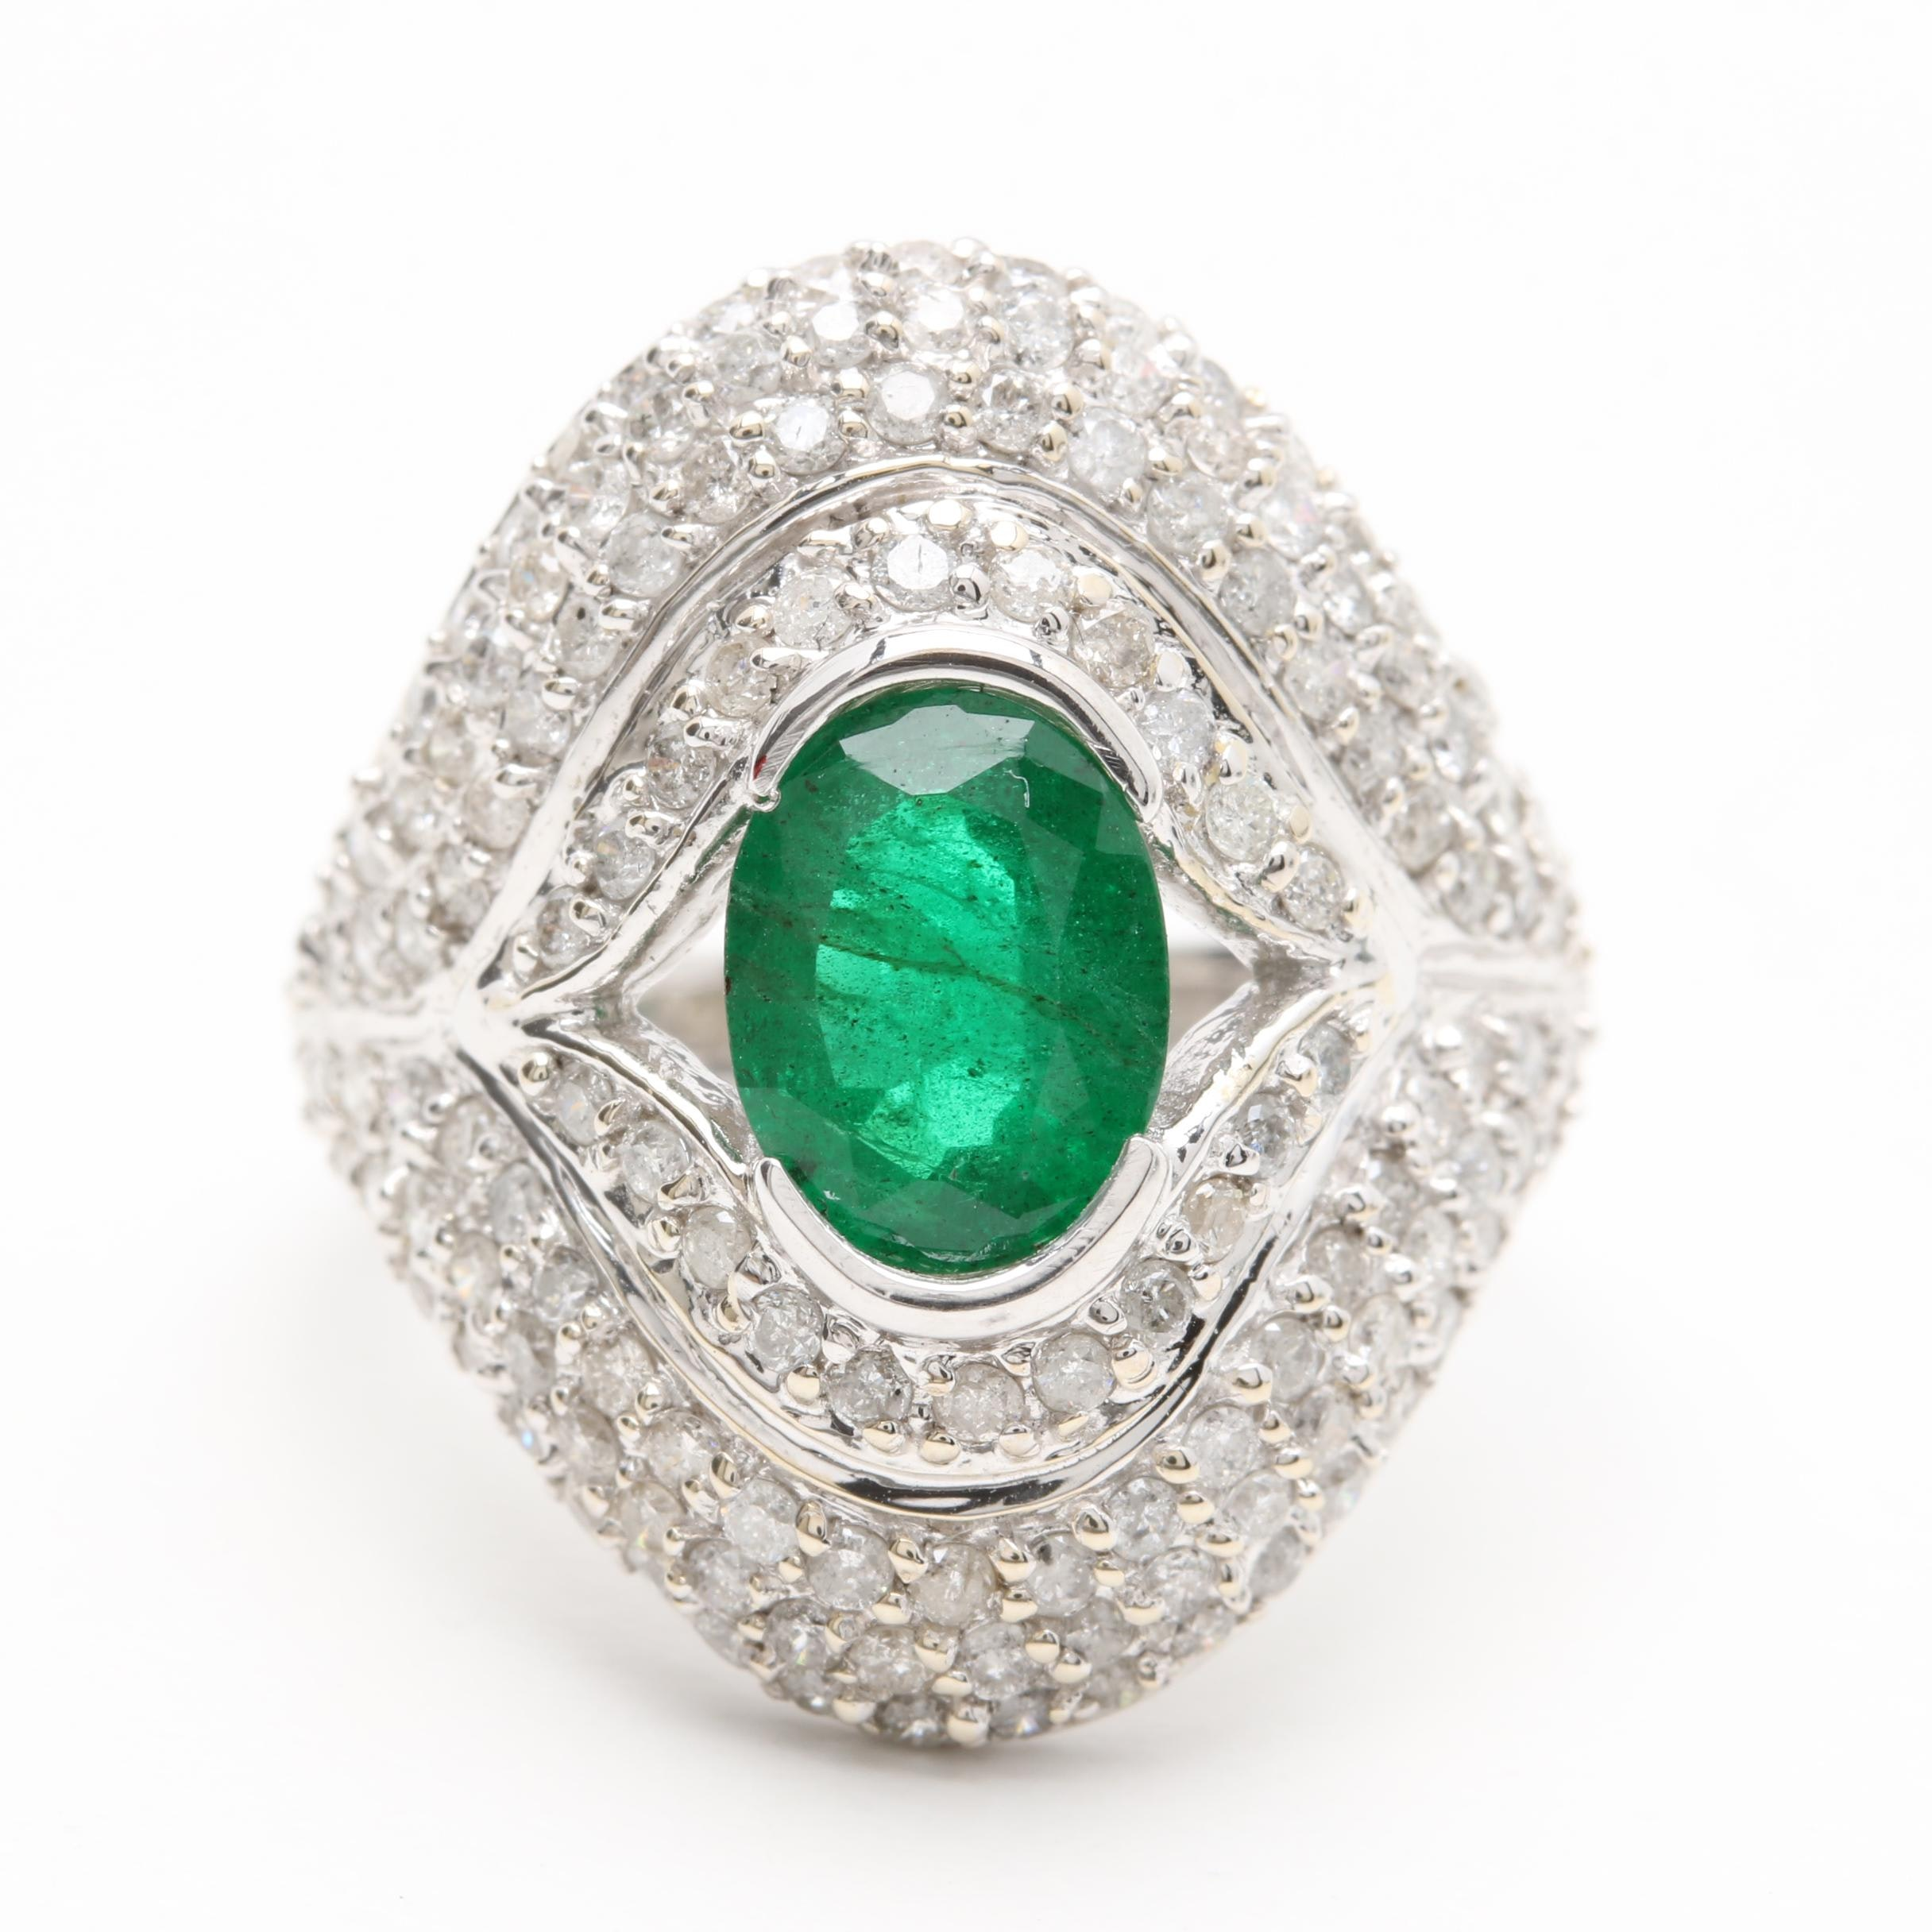 14K White Gold 1.27 CT Emerald and 1.25 CTW Diamond Ring